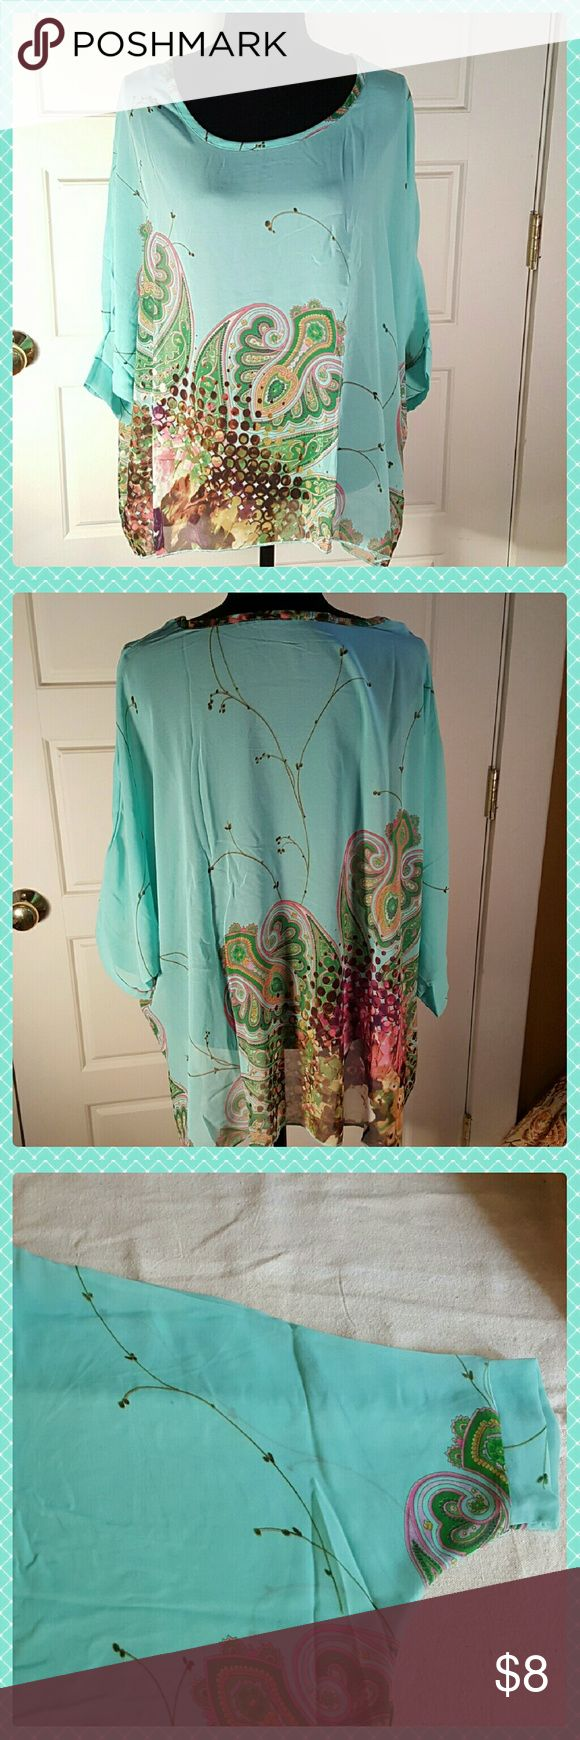 Chiffon Batwing Top PLUS SIZE EUC Pretty chiffon batwing top with teal, green and brown colors. Tag says XL but fits upto a 2X. Is see through so you will need to wear a cami underneath. Soft and flowy. Sleeves come to about middle of forearm. Measurements taken laying flat.  Front length: 26 in. Back length: 28 in. Armpit to armpit: 34 in. Sleeve cuff width: 6 in. Tops